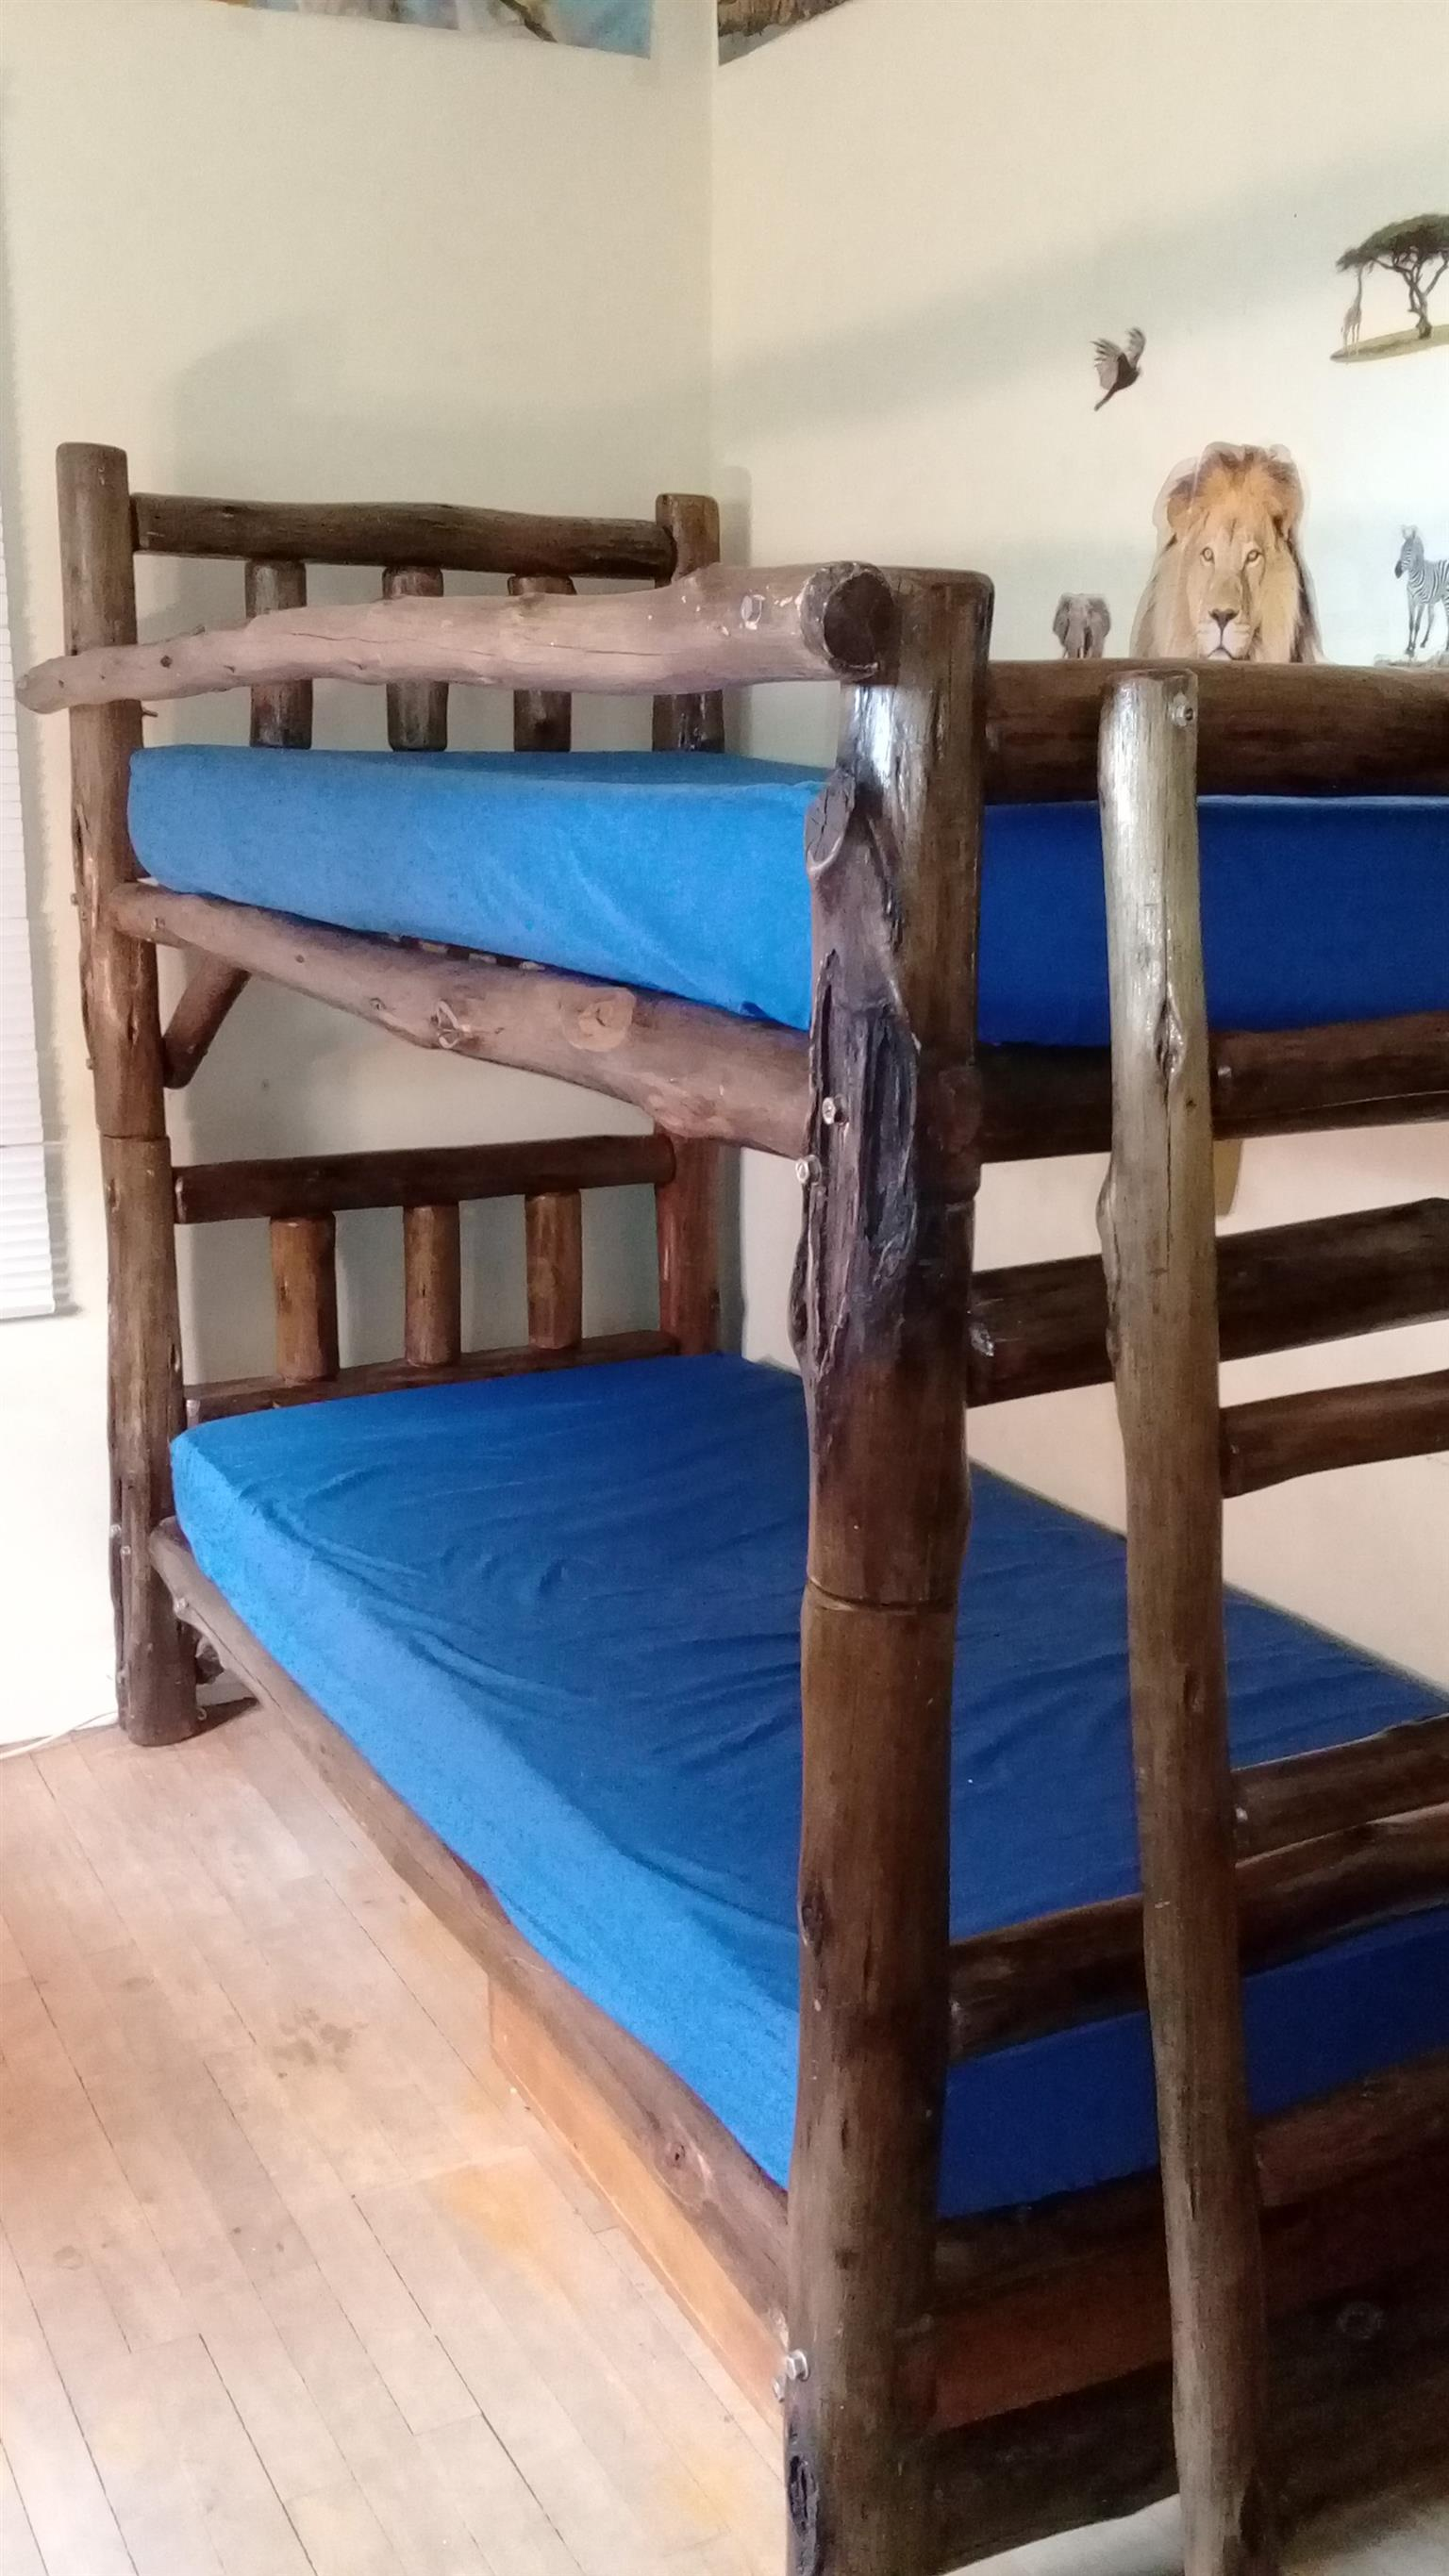 Log Furniture beds ; single beds ; bunkerbeds etc.